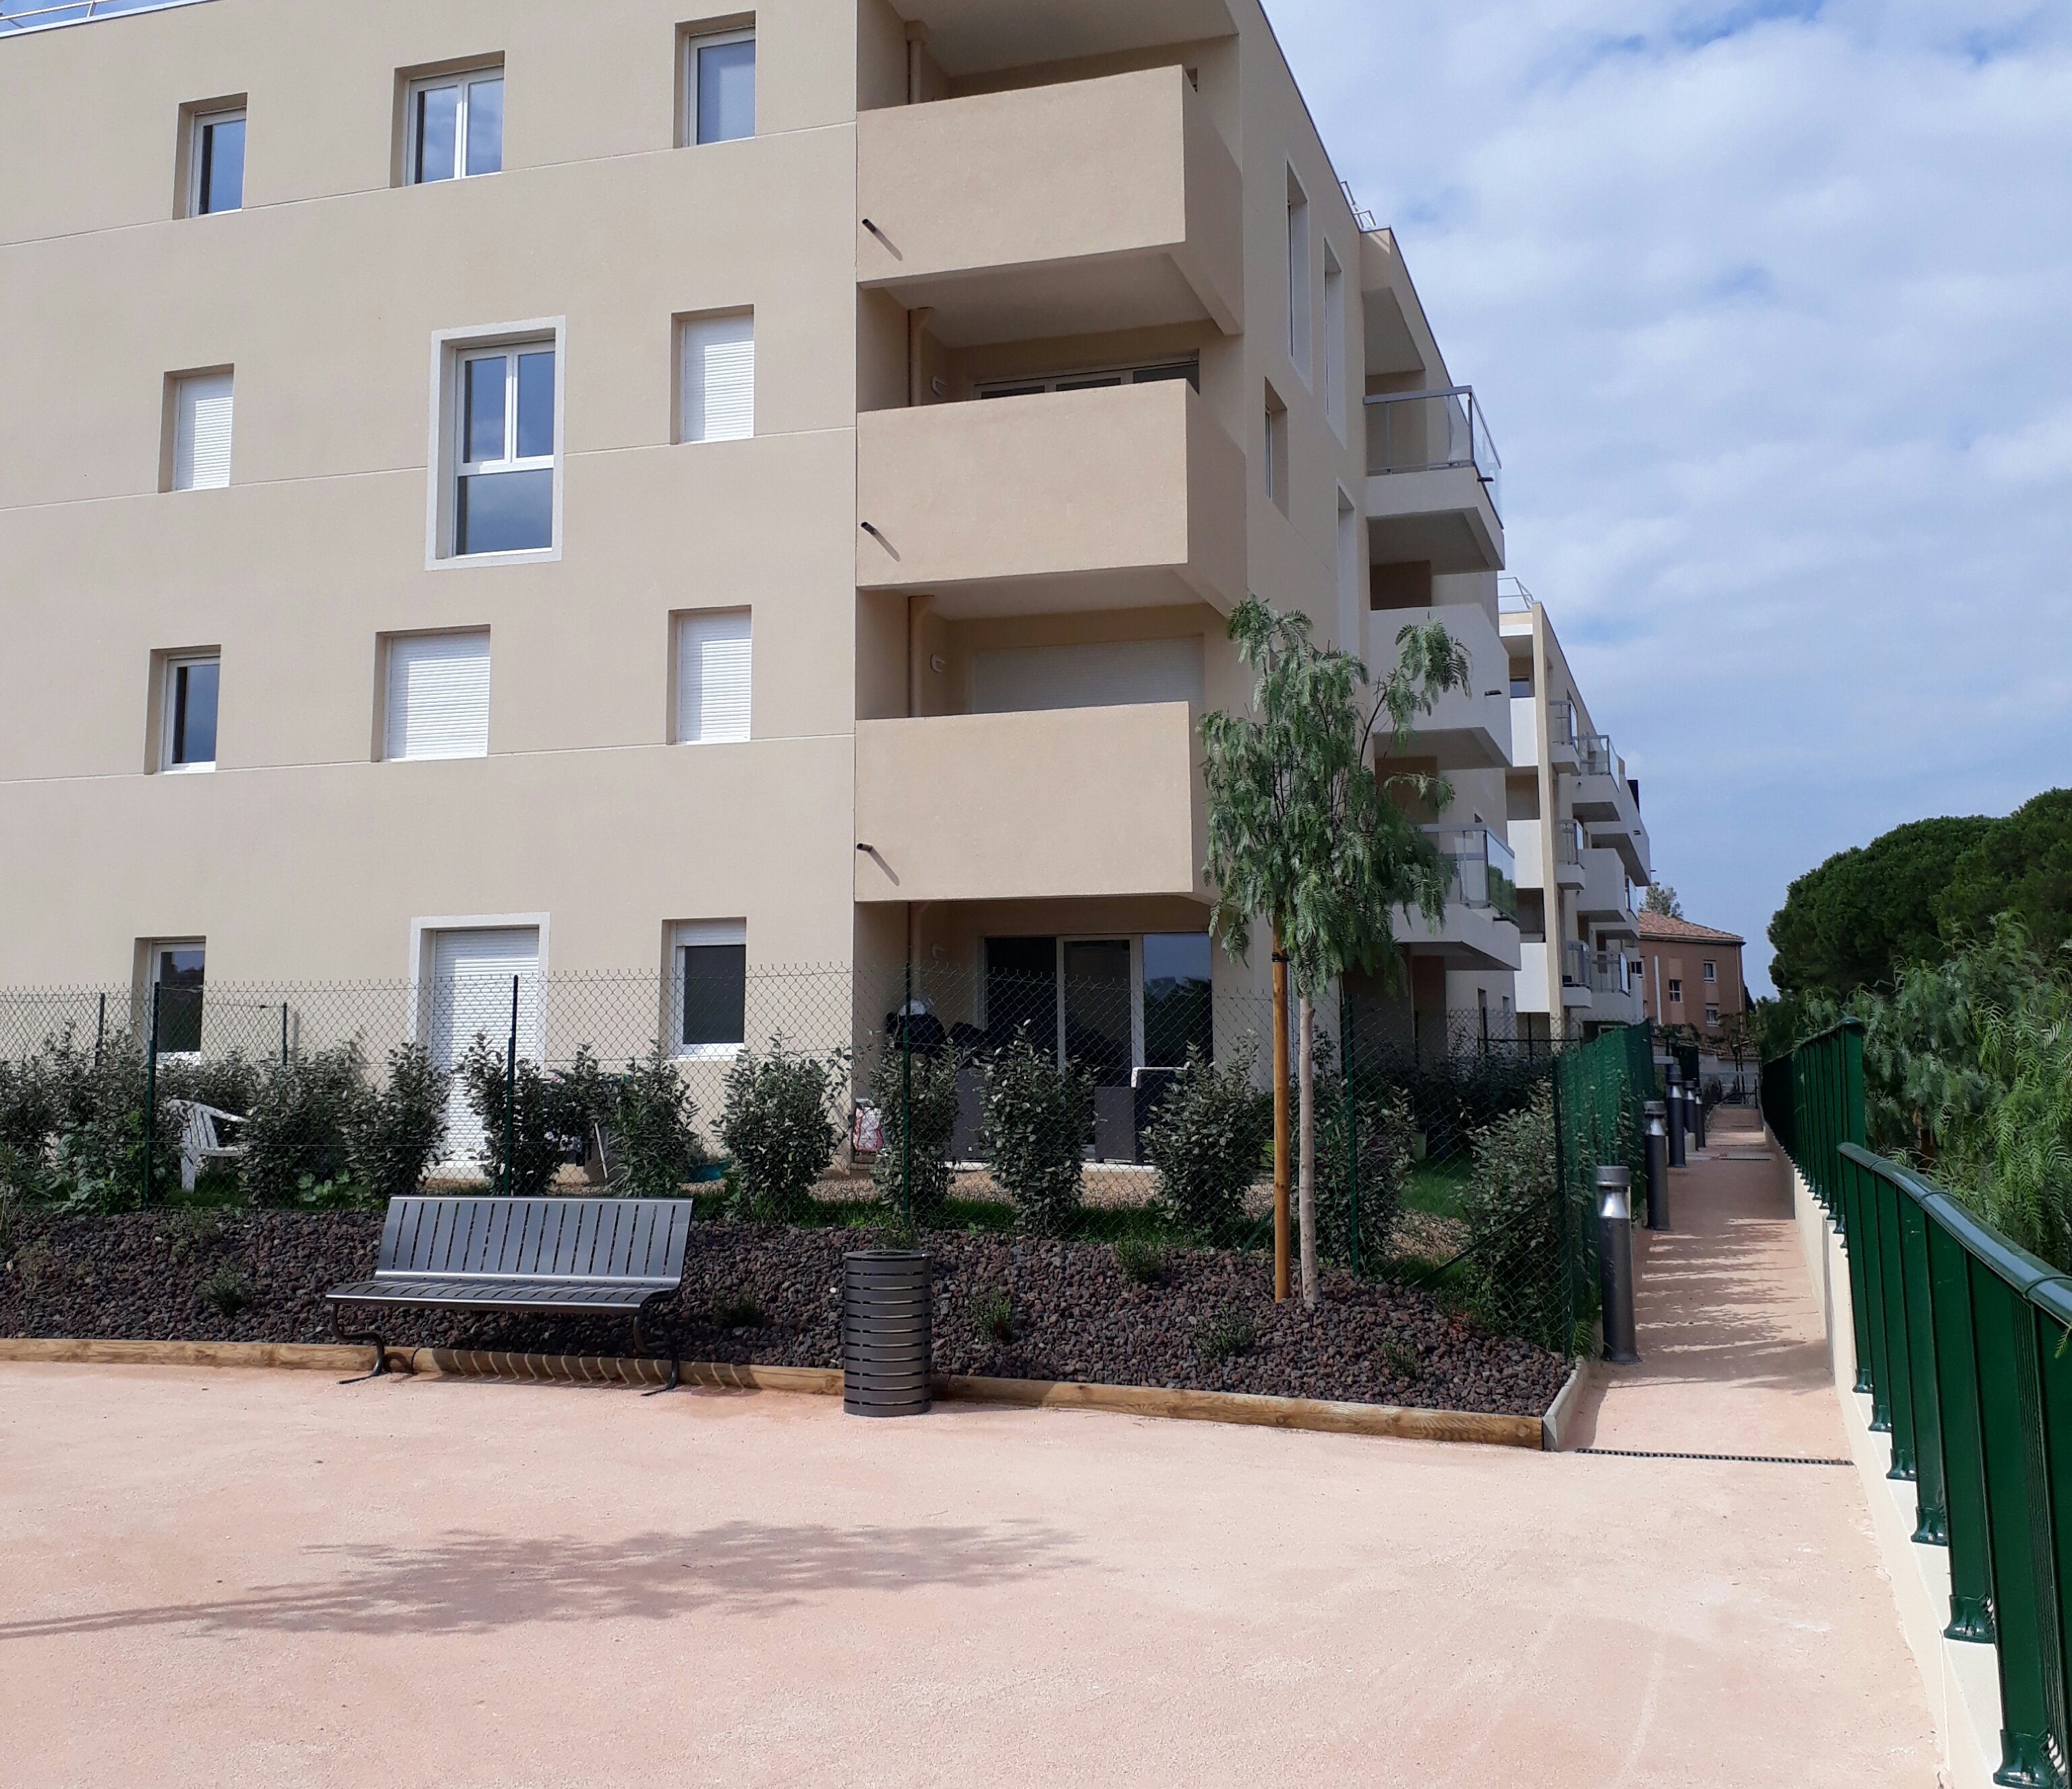 Location appartement à Seyne-sur-Mer, type appartement, 40.43m²